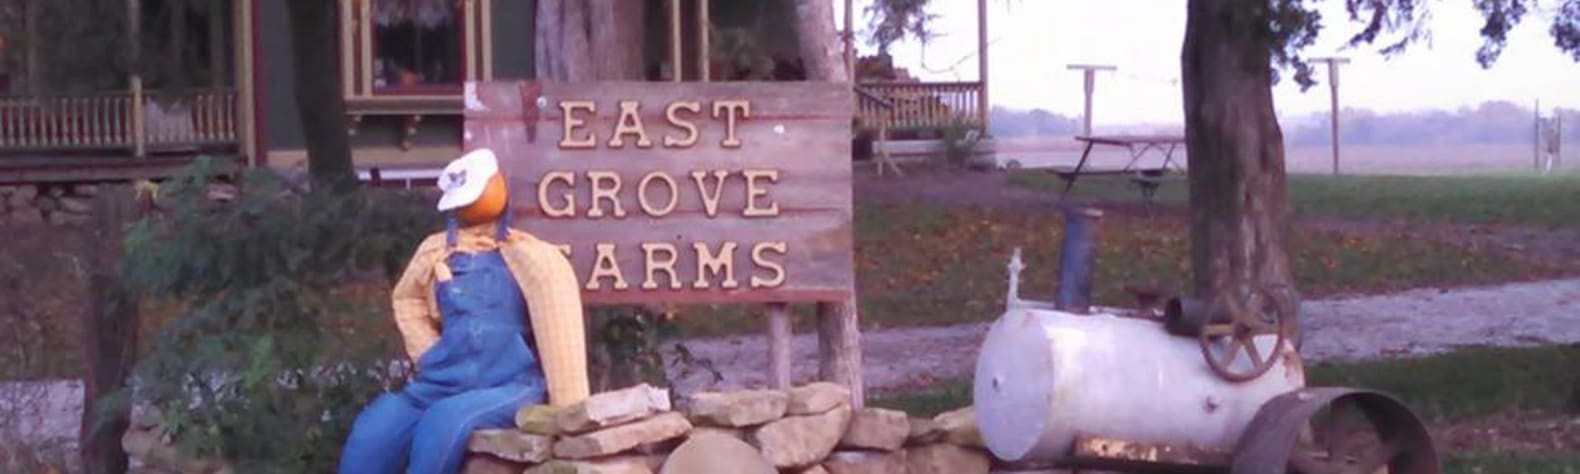 East Grove Farms Winery and Vineyard